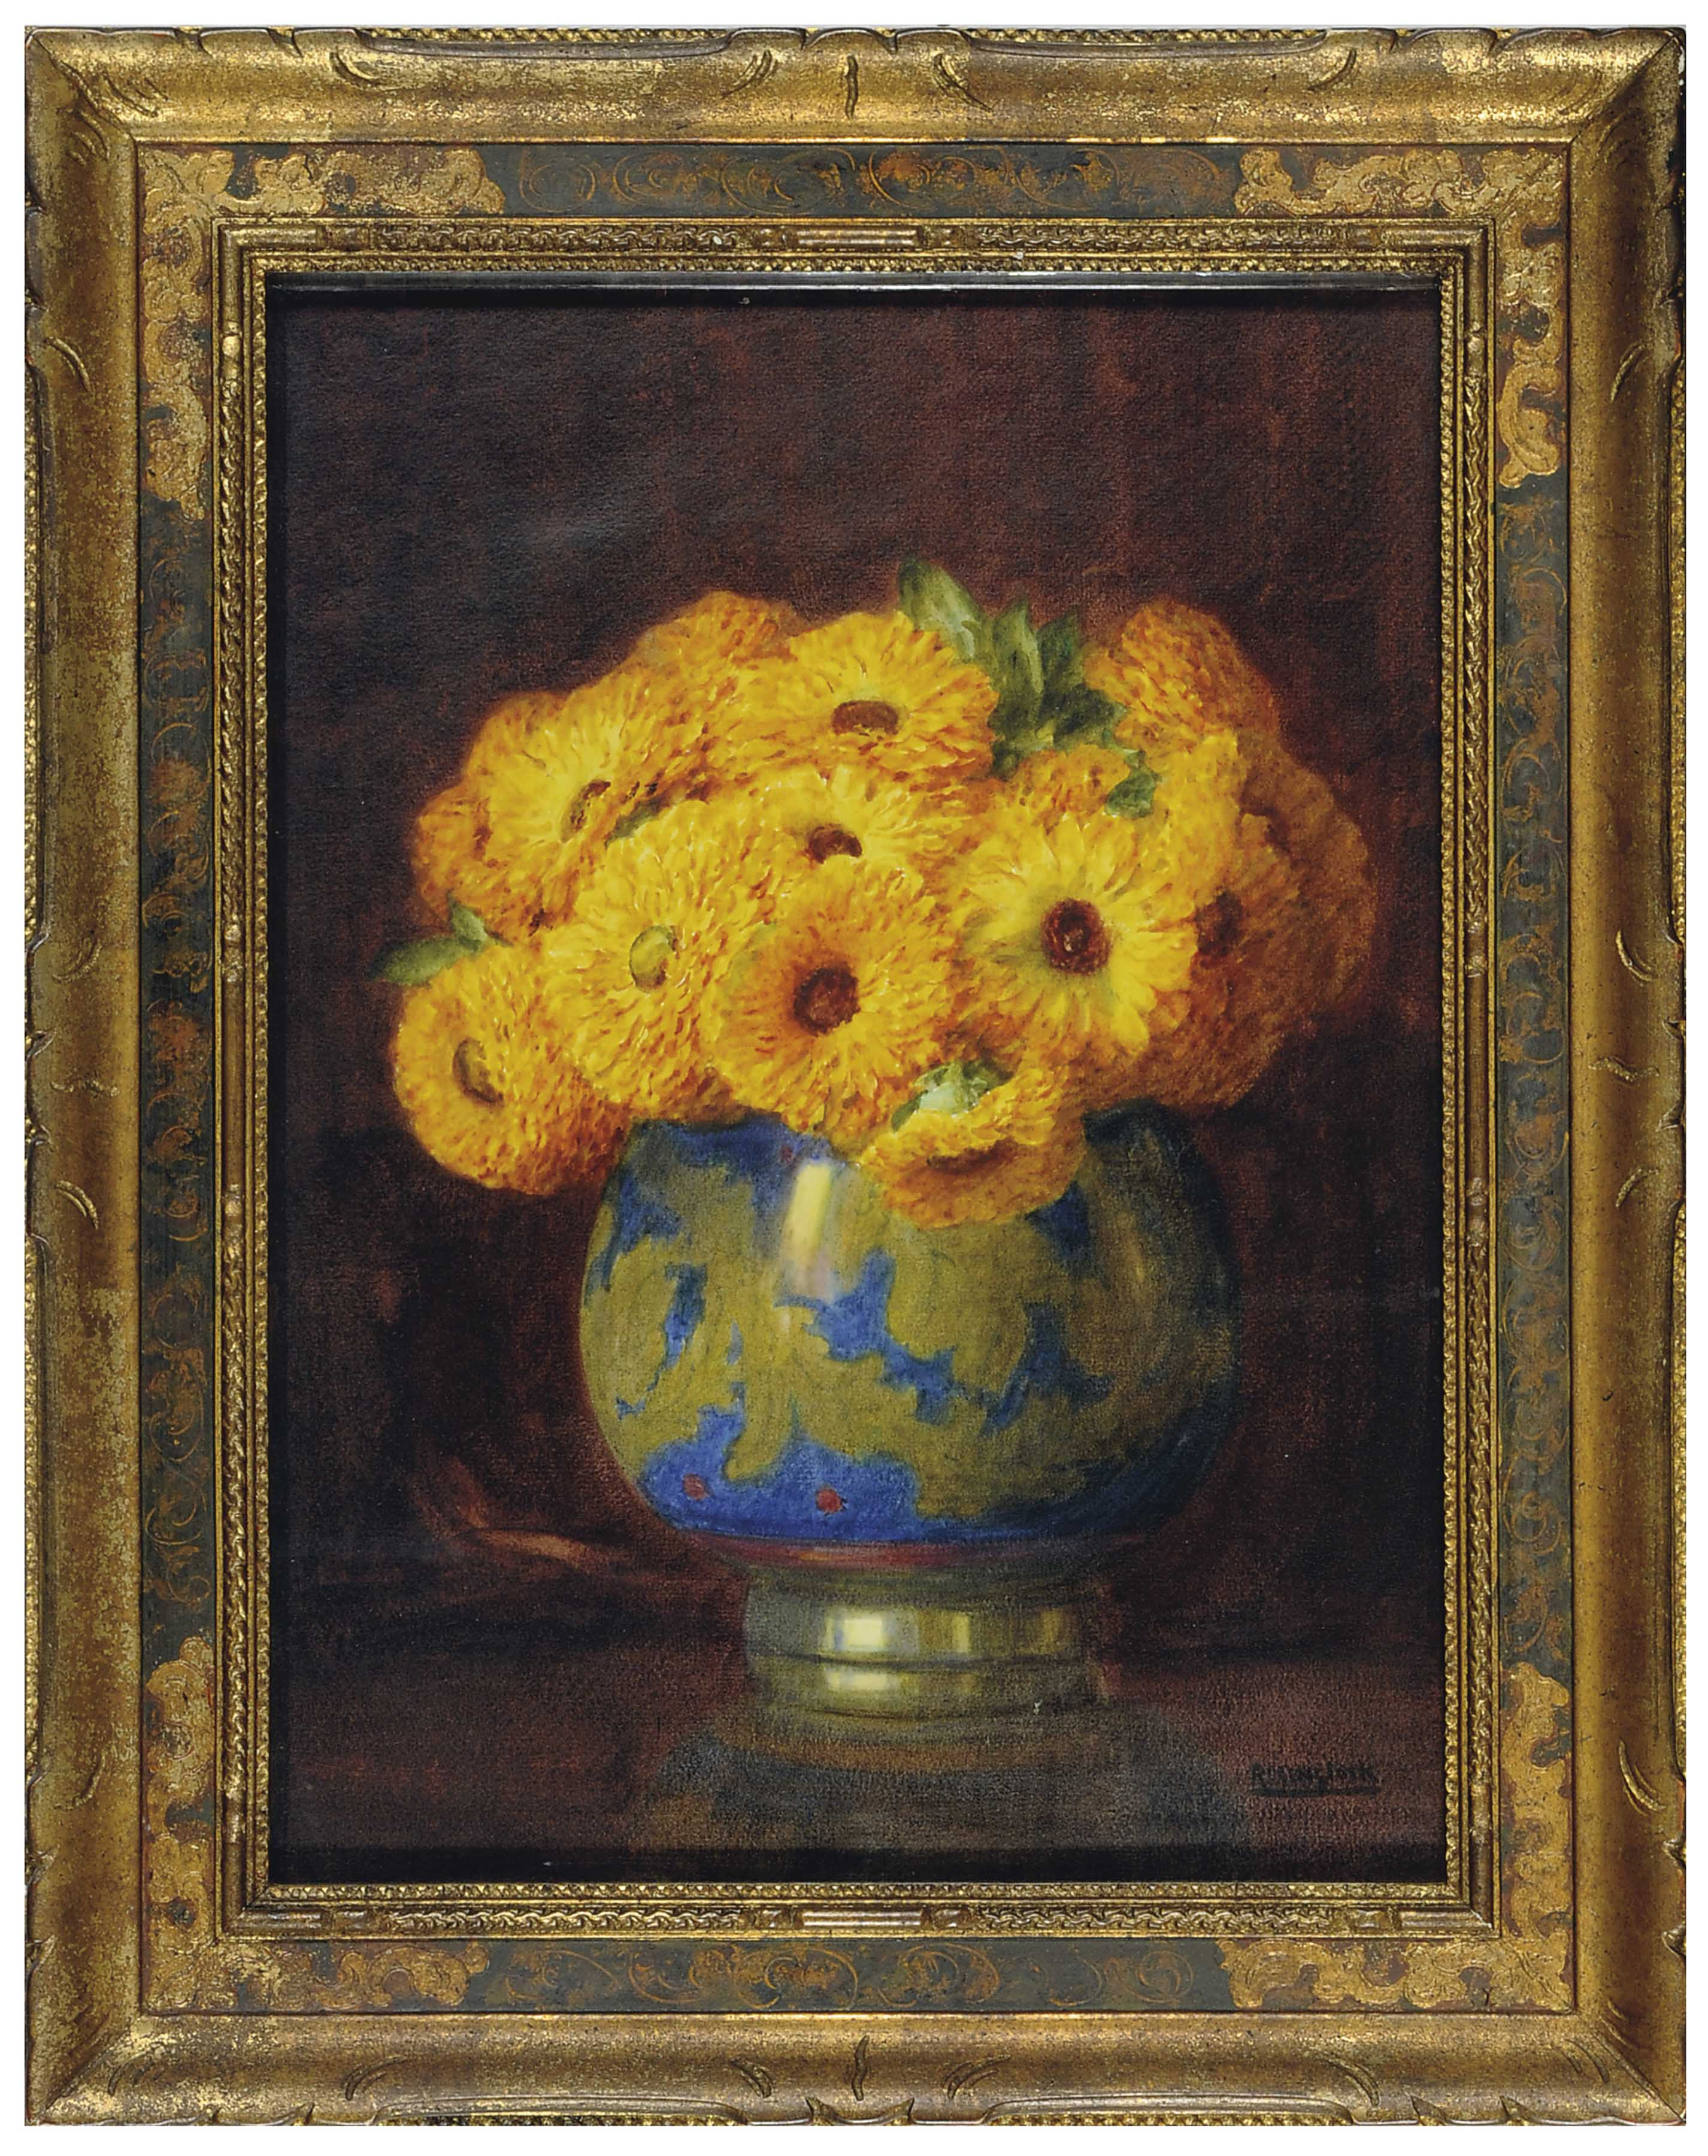 Still life of yellow flowers in a porcelain vase